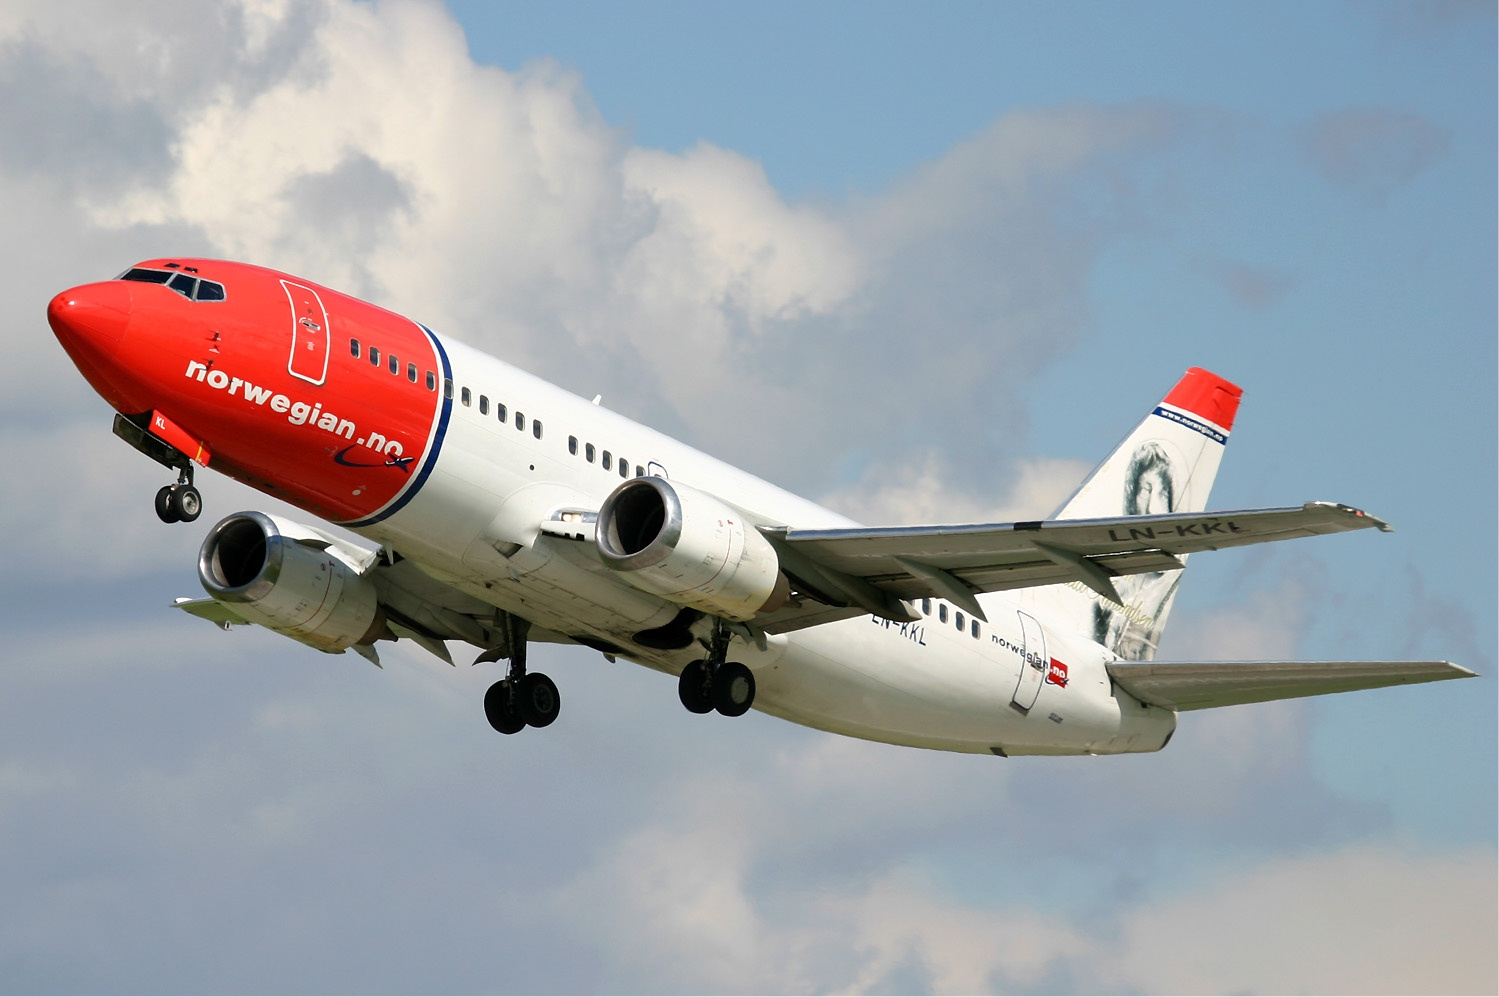 Norwegian Airlines resumes flights to the Canaries